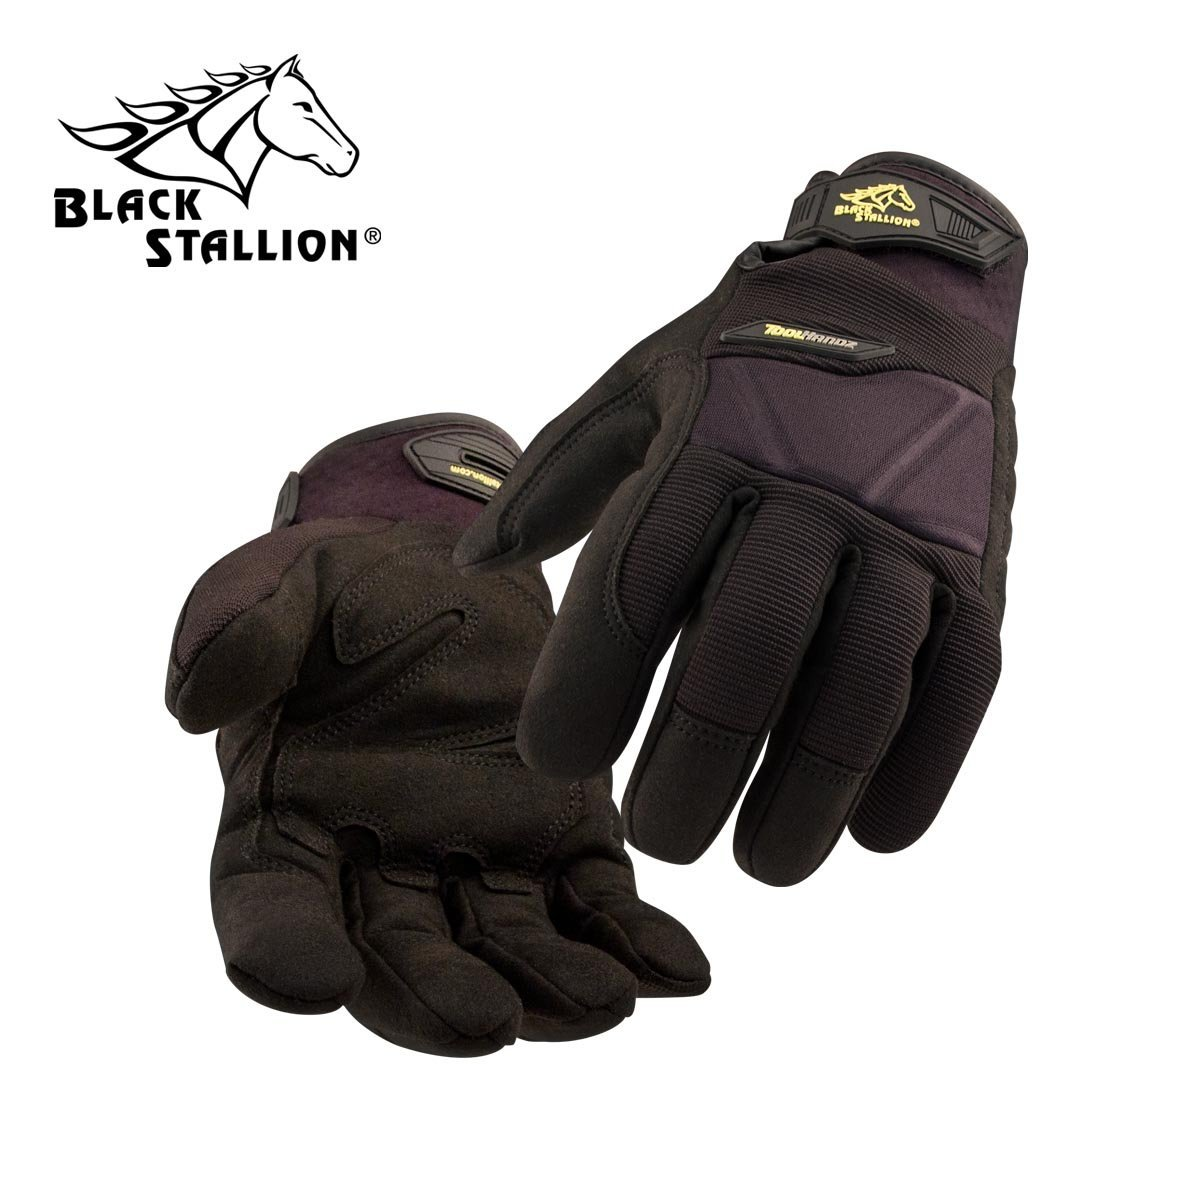 REVCO BLACK STALLION - GX101 TOOLHANDZ SYNTHETIC LEATHER MECHANIC'S GLOVES - SIZE: LARGE - CASE OF: 120 PAIR